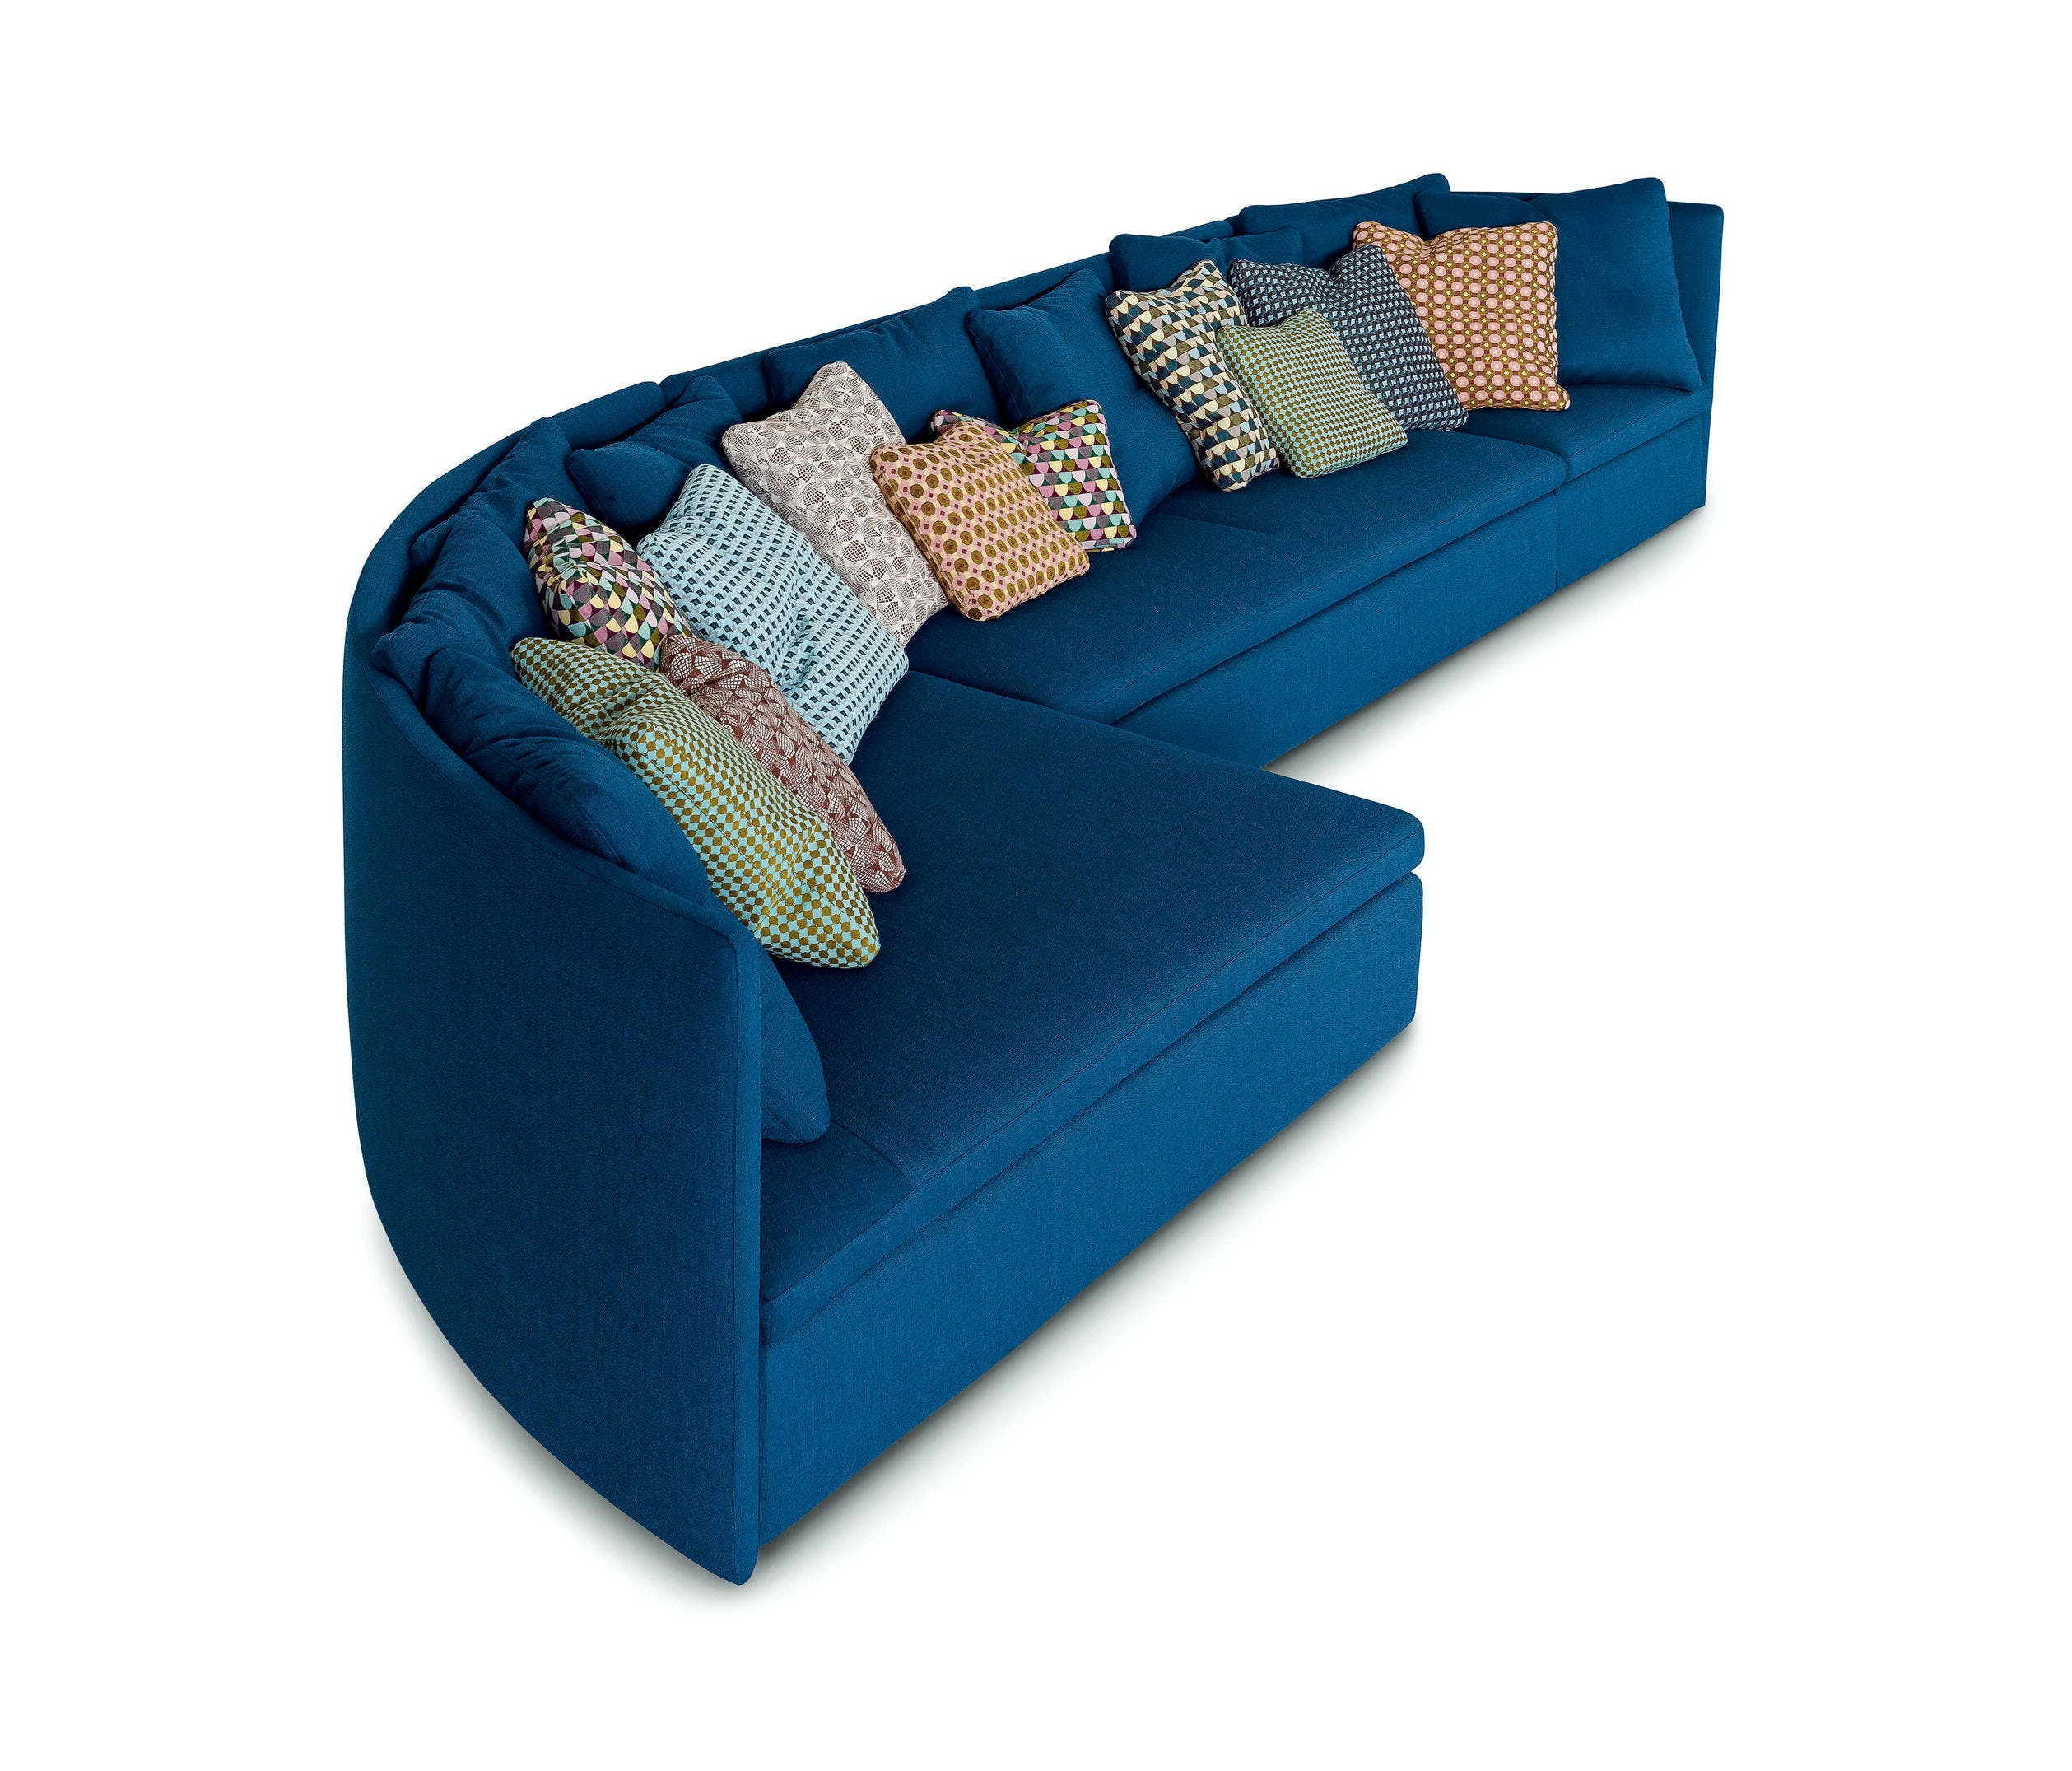 Arflex Blue Mangold Curved Sofa Side